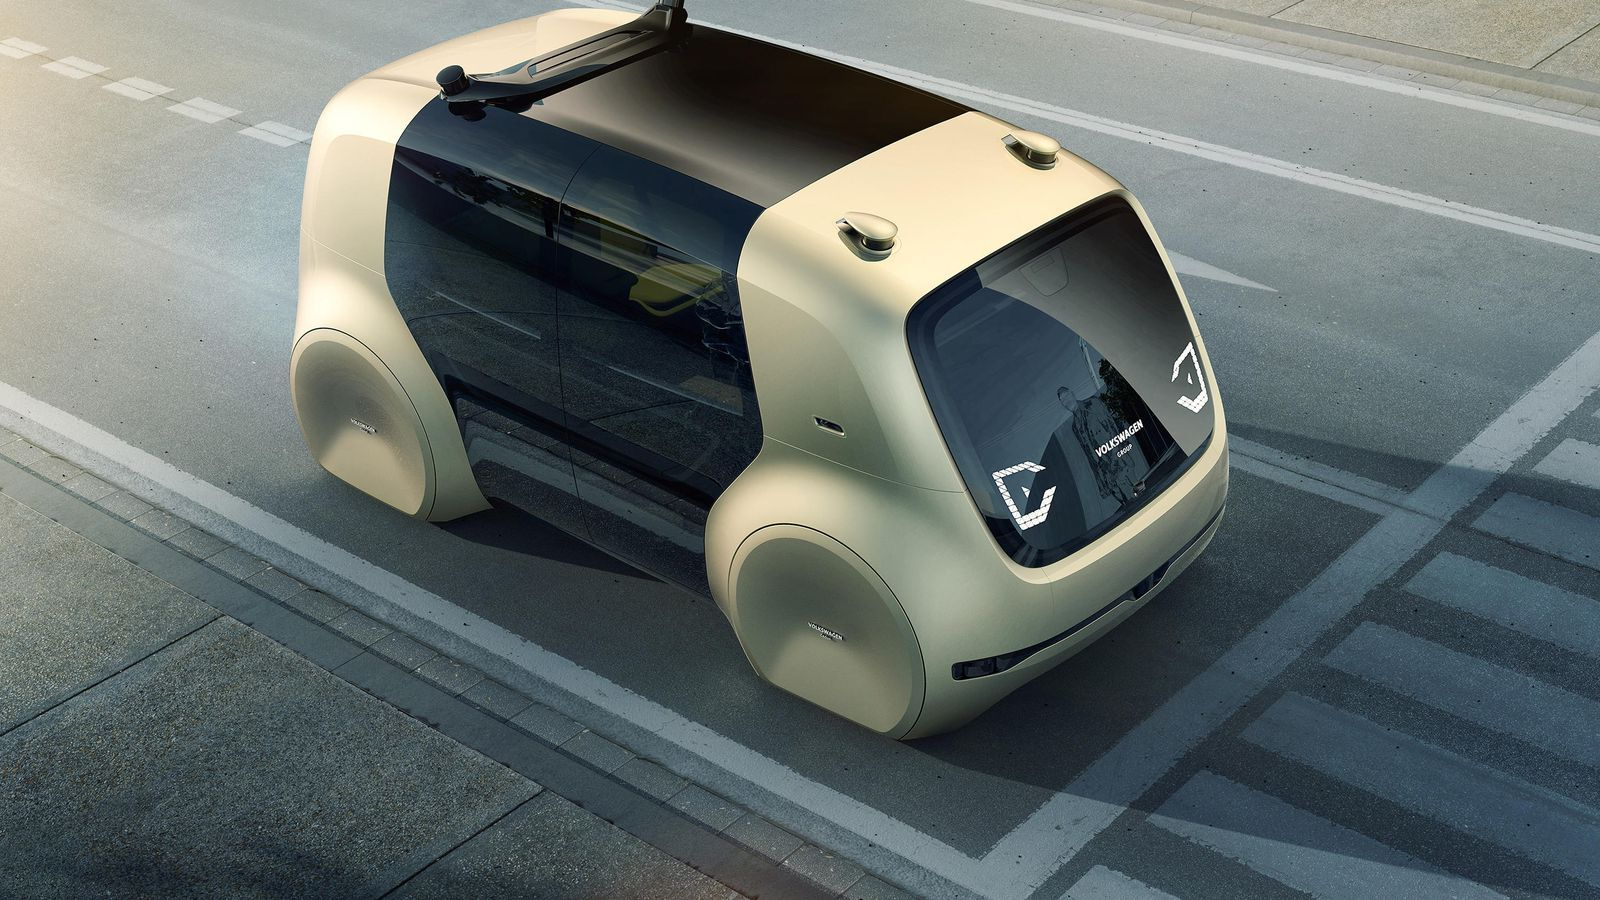 Volkswagen Takes Driver Less Tech To Next Level Adds Highly Automated Cars On Road Autonomous Vehicle Electric Cars Amazing Cars